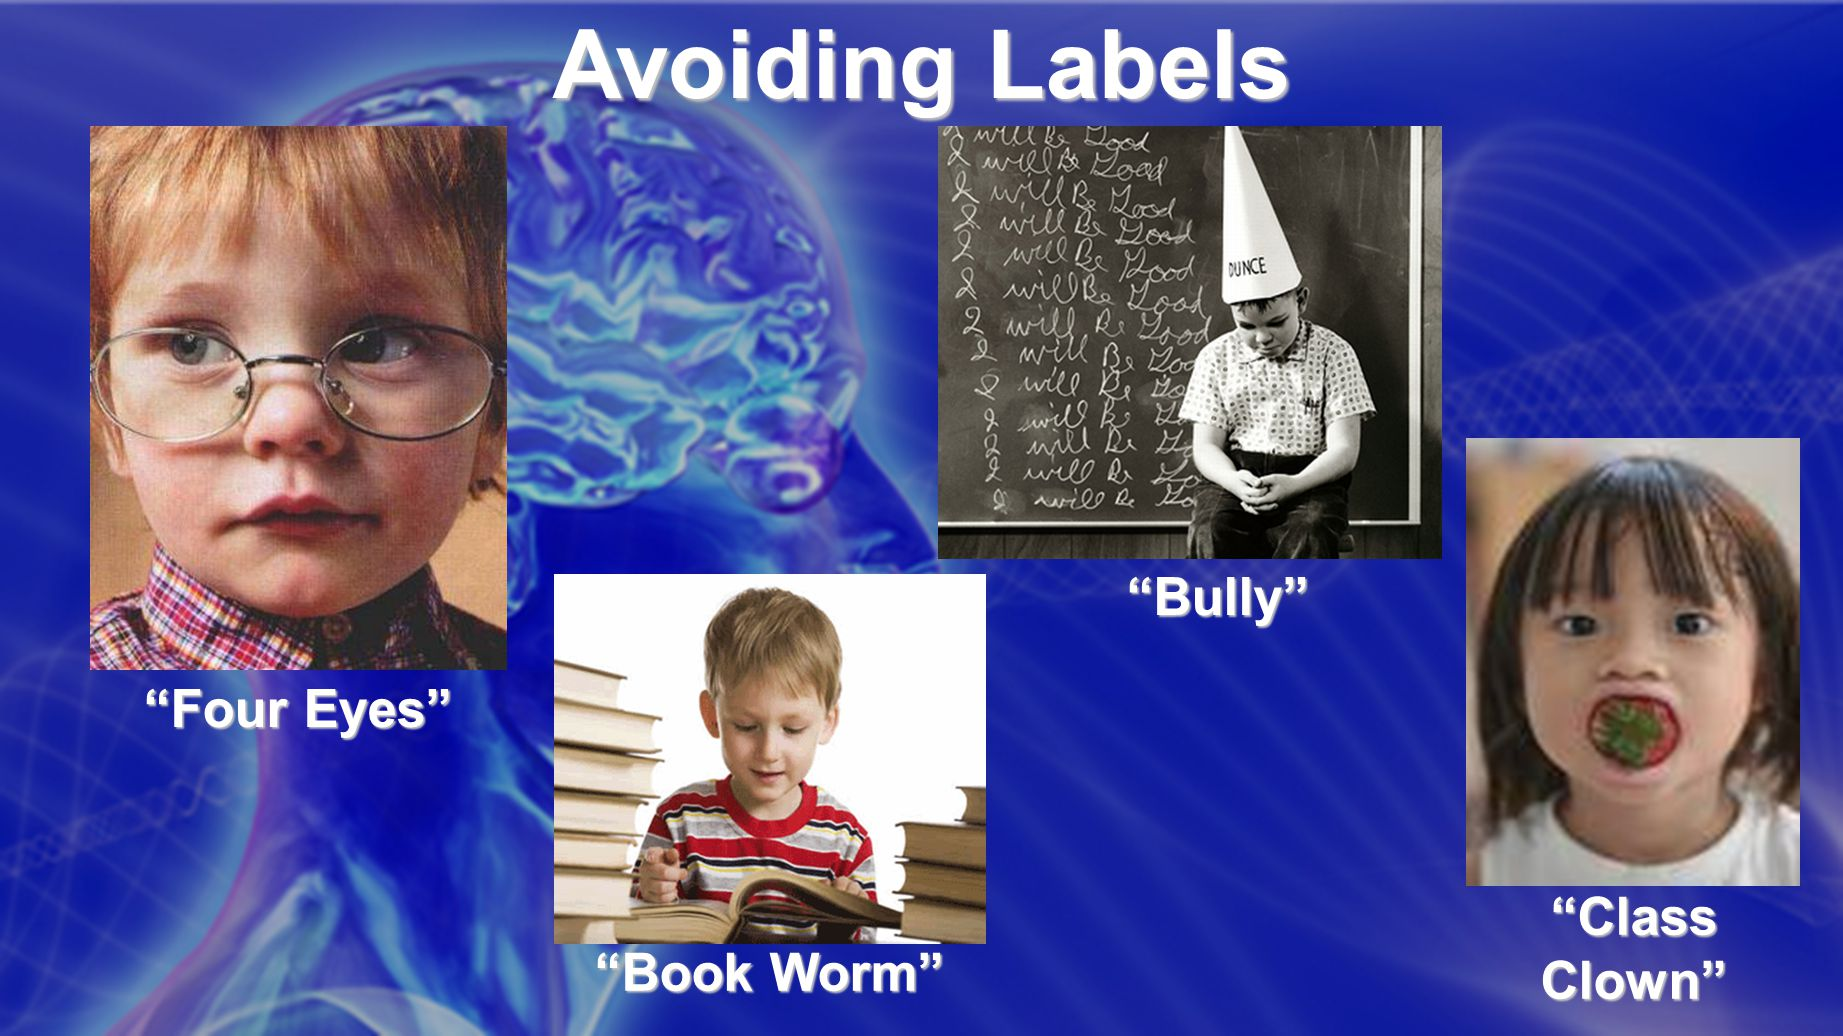 Avoiding Labels Four Eyes Book Worm Bully Class Clown